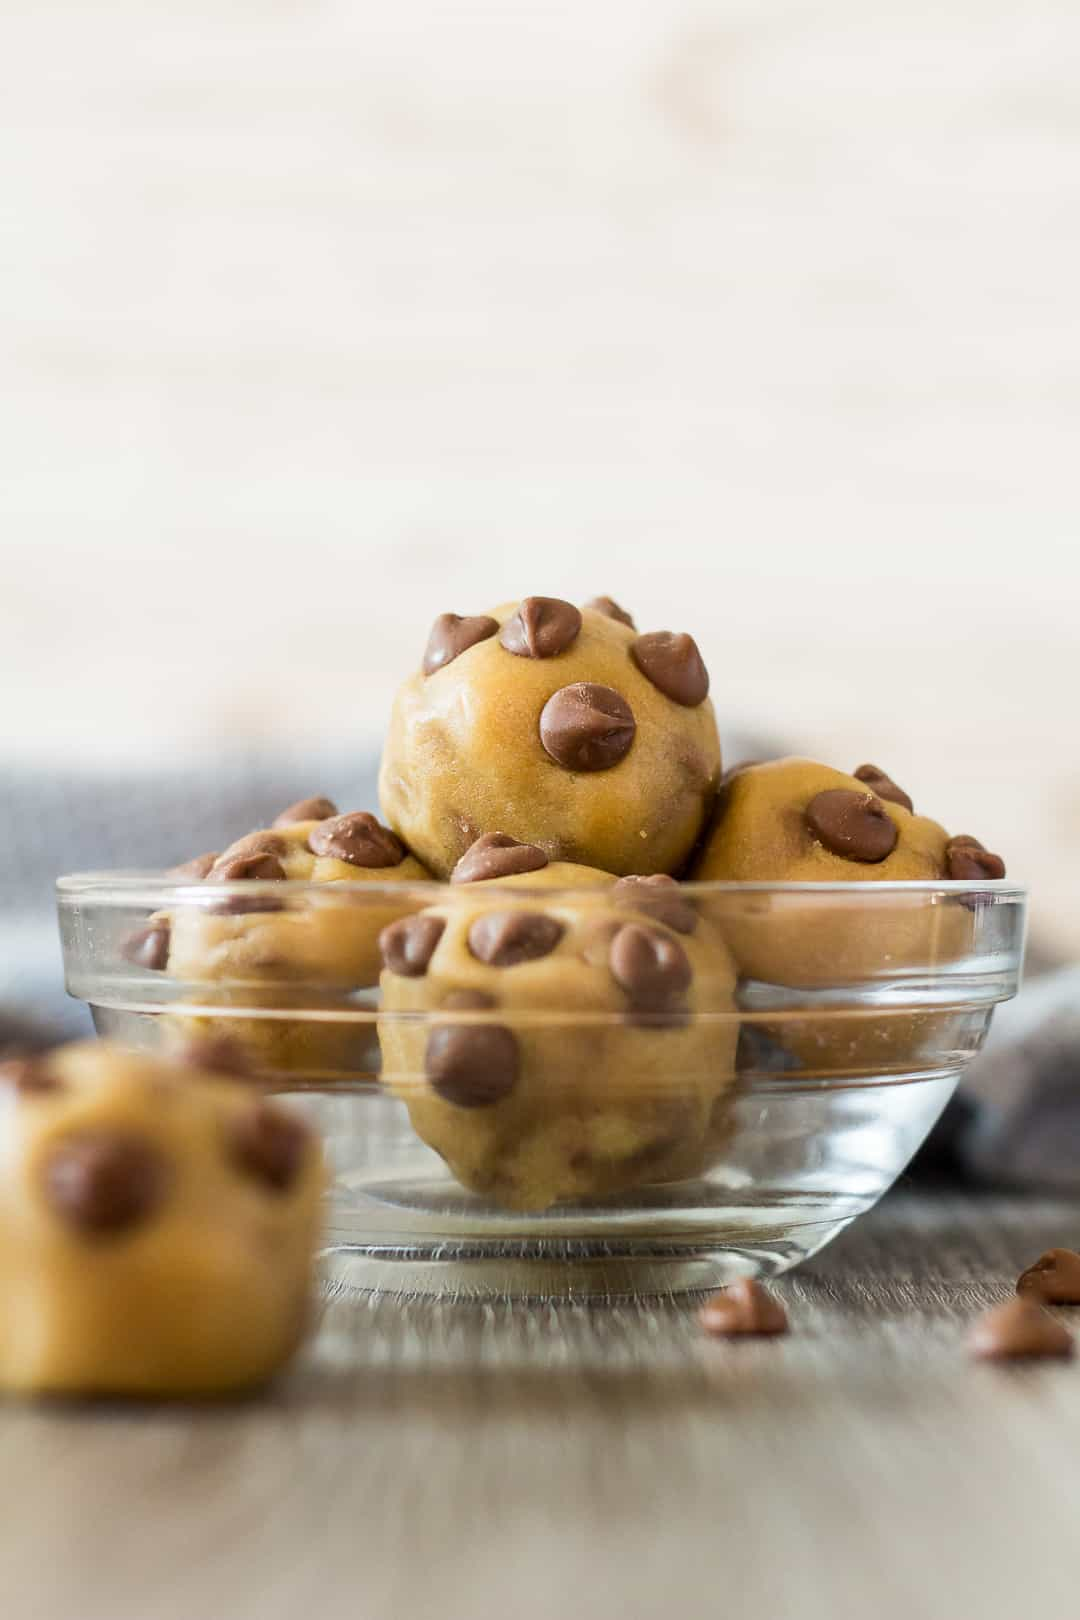 Chocolate Chip Cookie Dough Balls arranged in a small glass bowl.